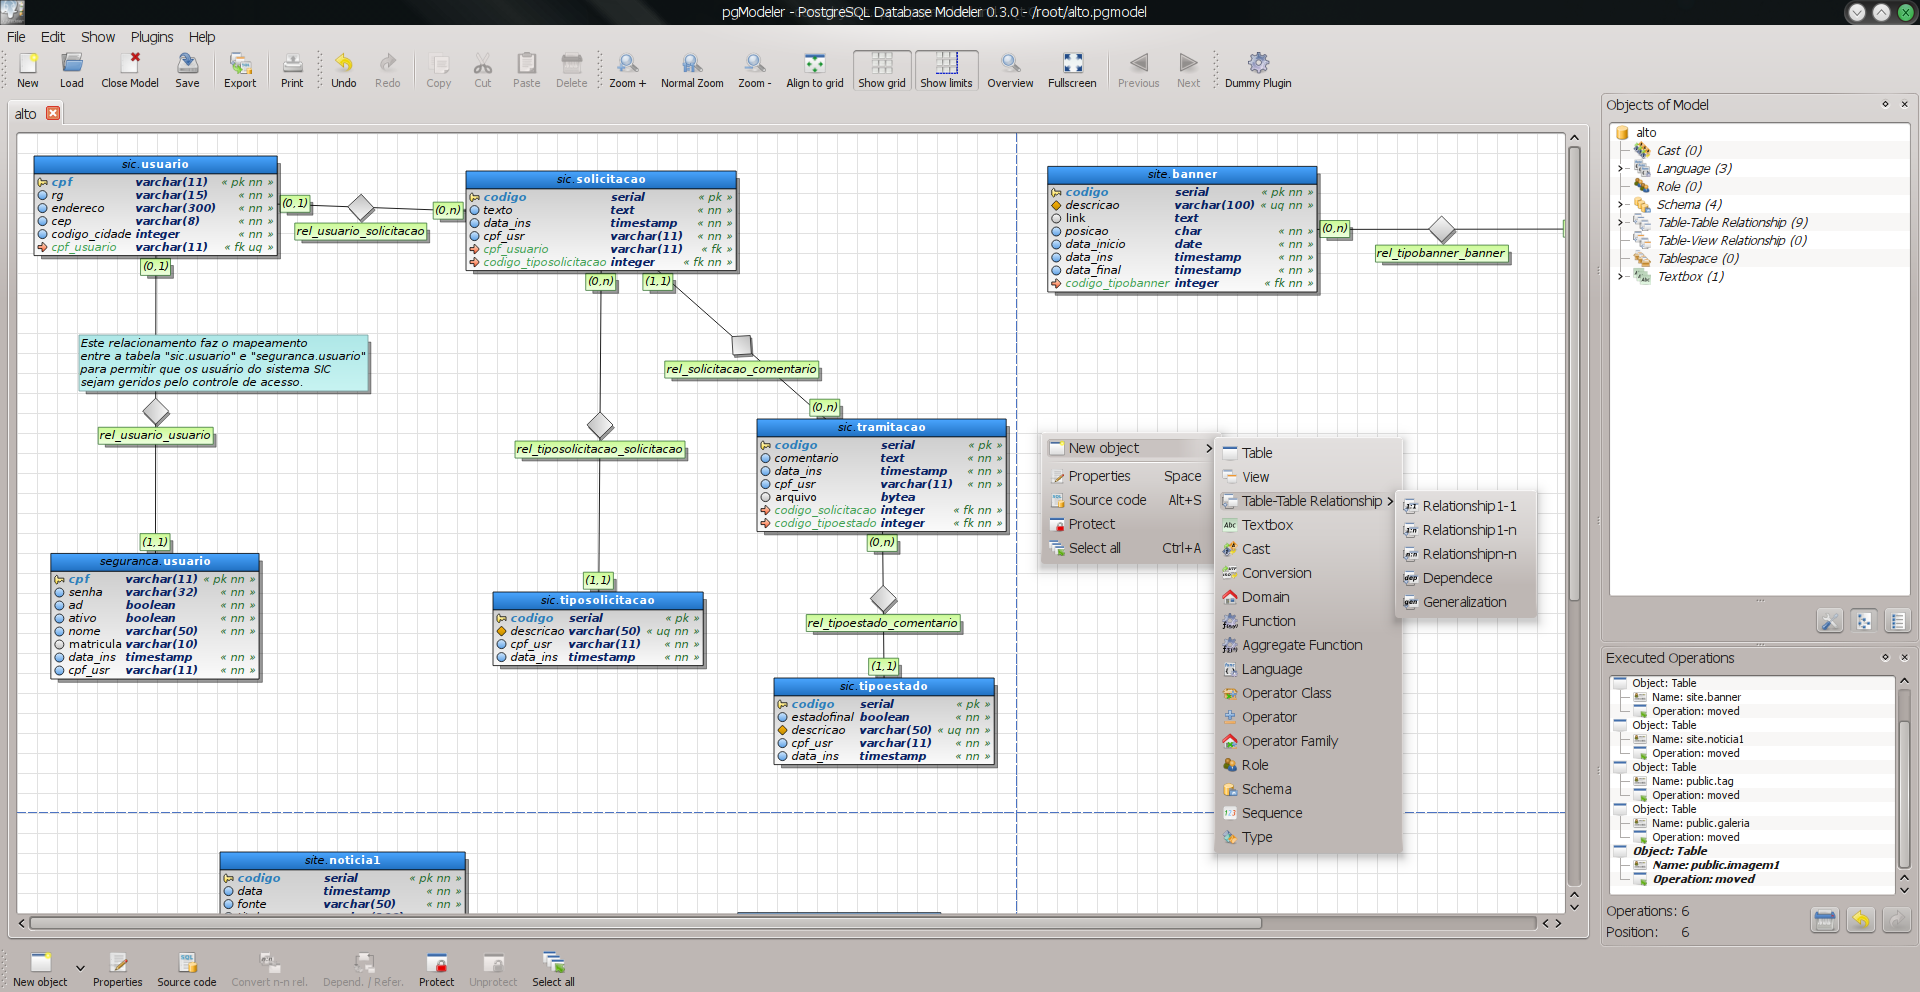 PostgreSQL Database Modeler screenshot 3